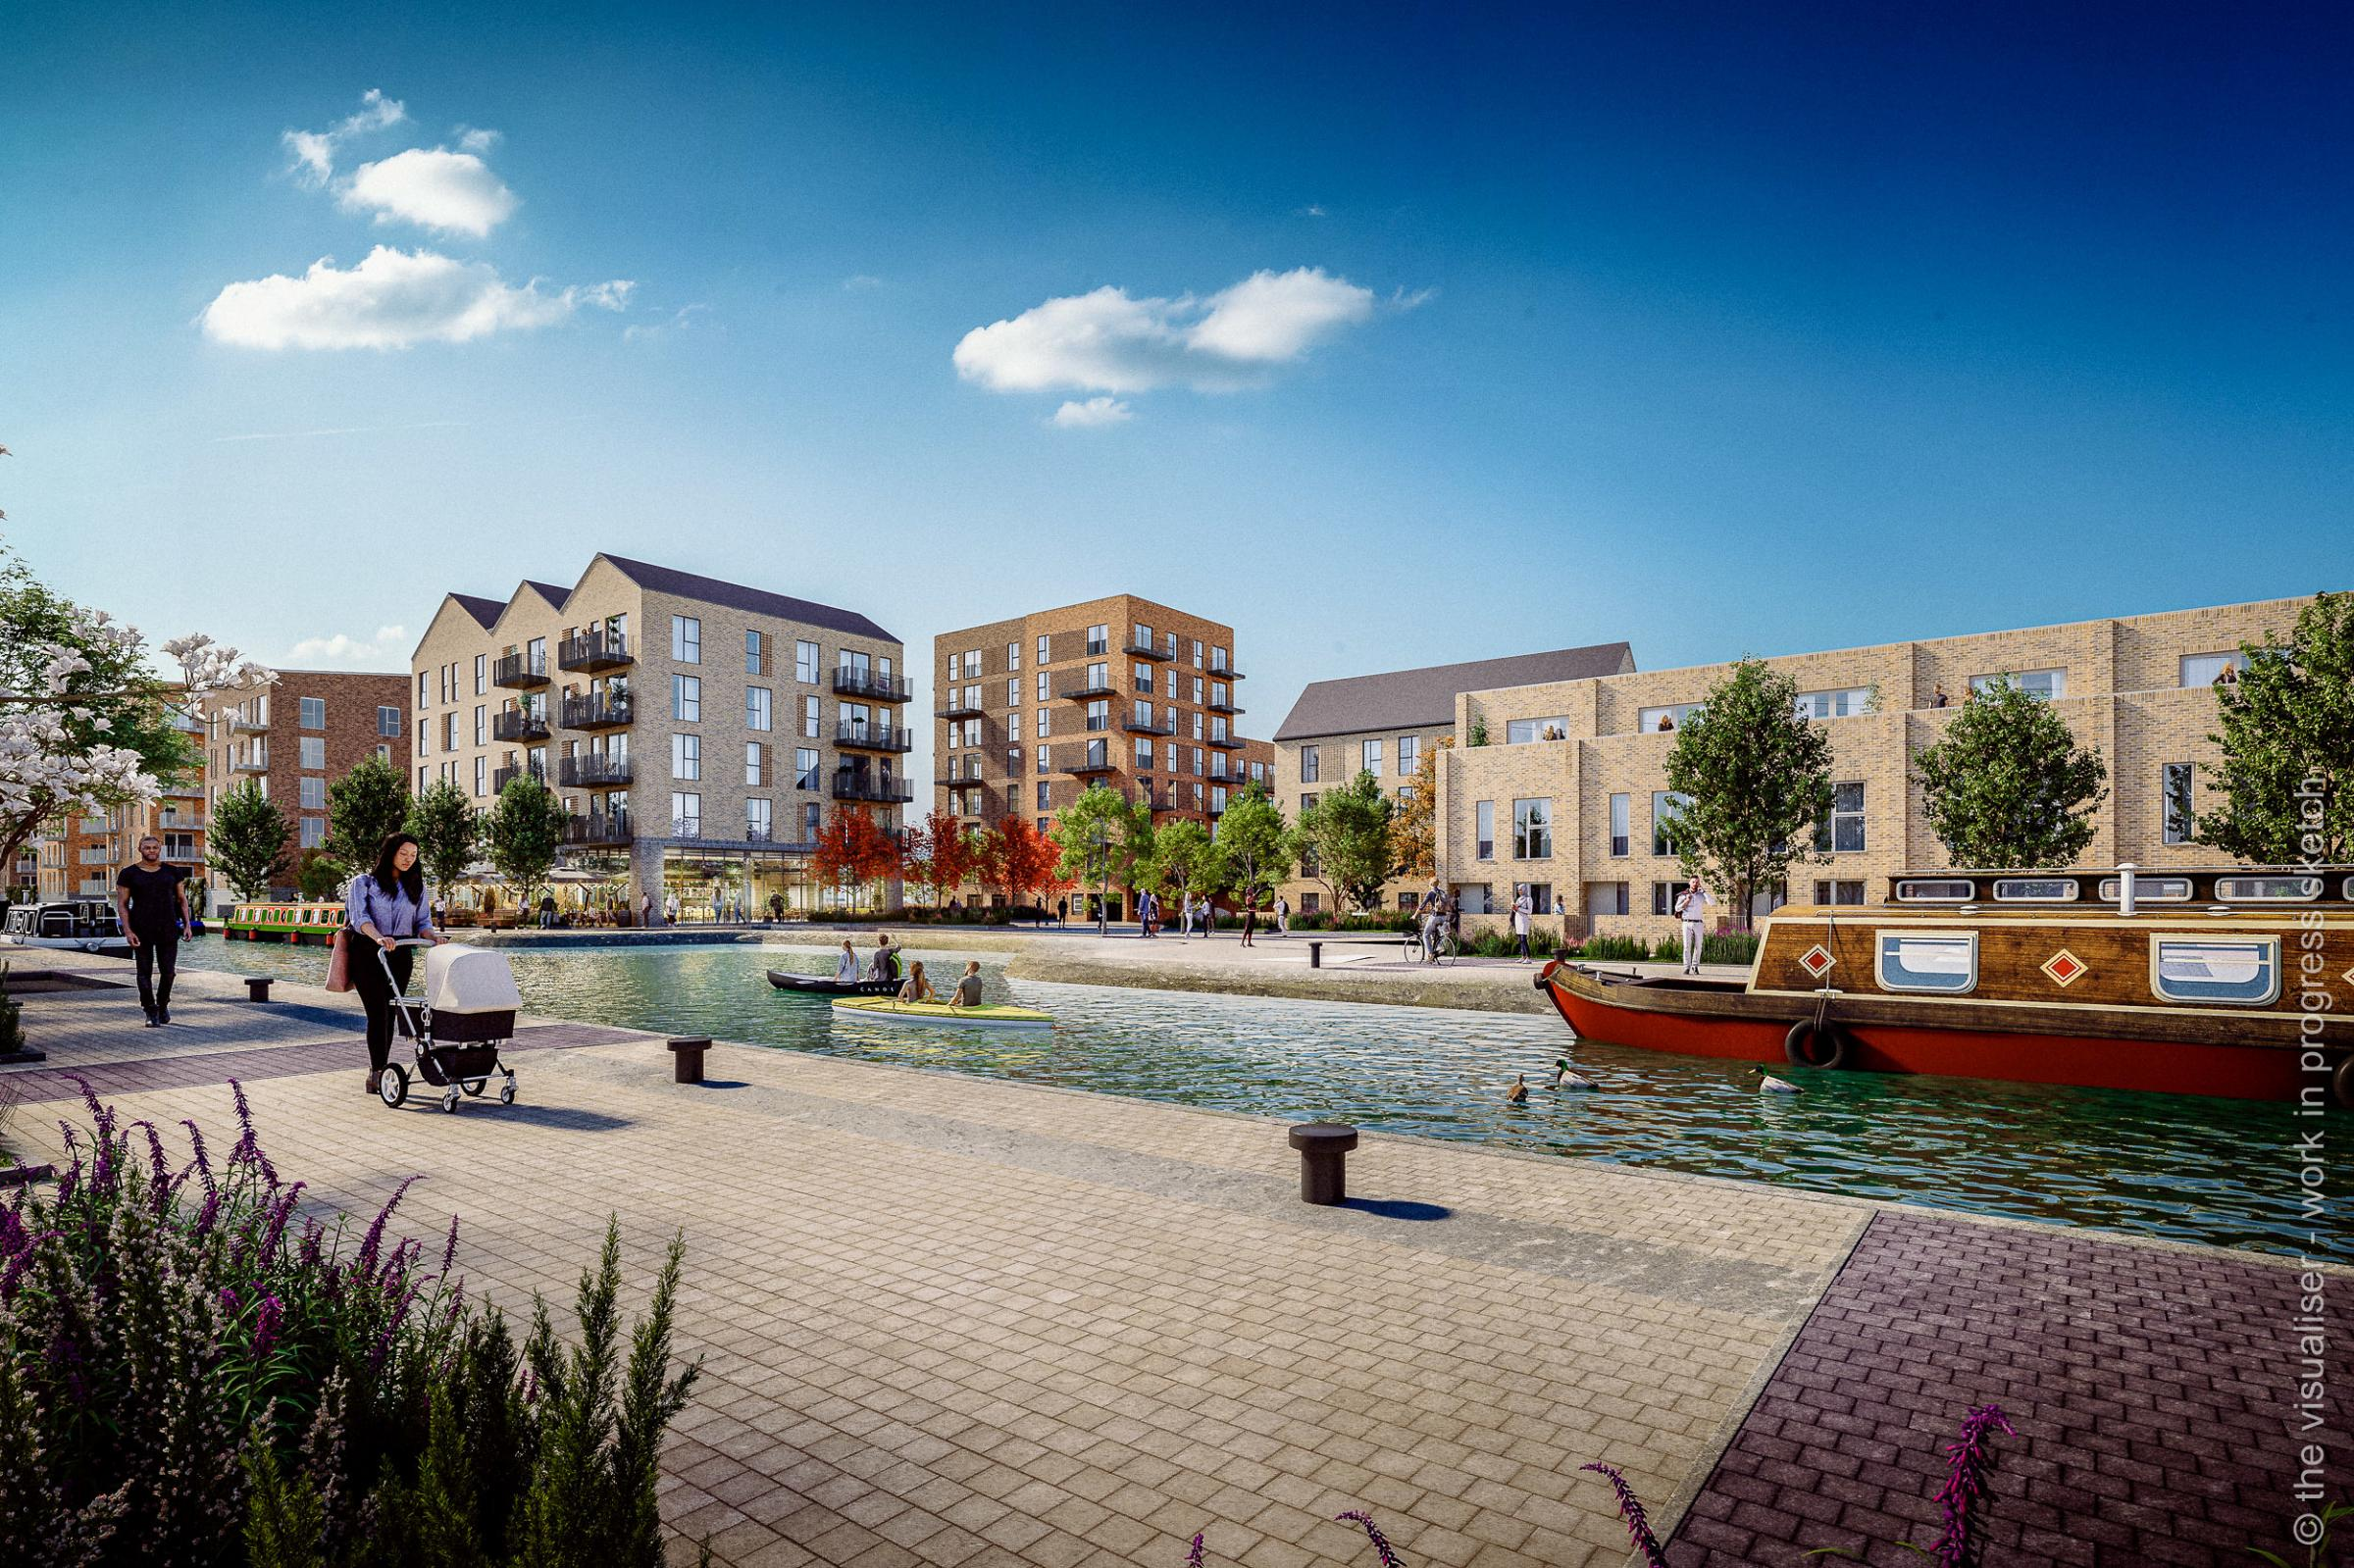 How Stoke Wharf could soon look if scheme gets approval